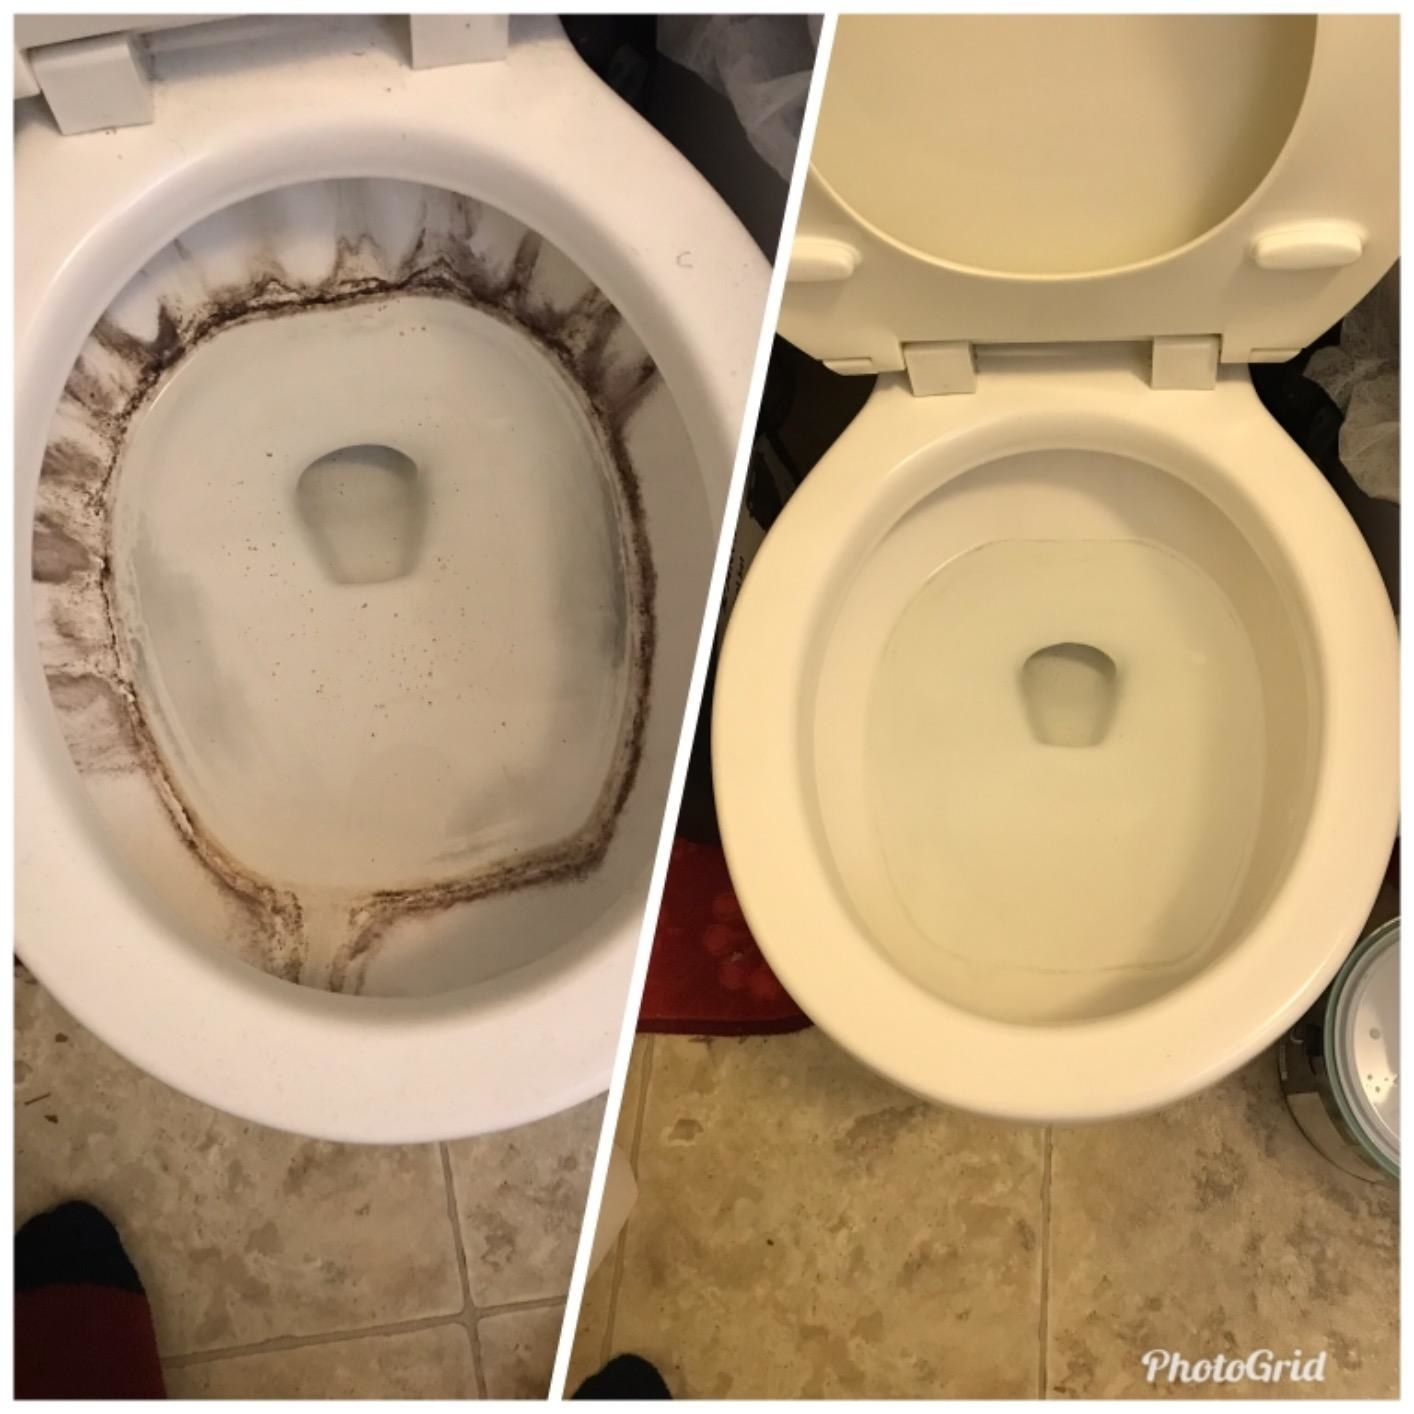 Reviewer photo showing before-and-after results of using toilet pumice stone